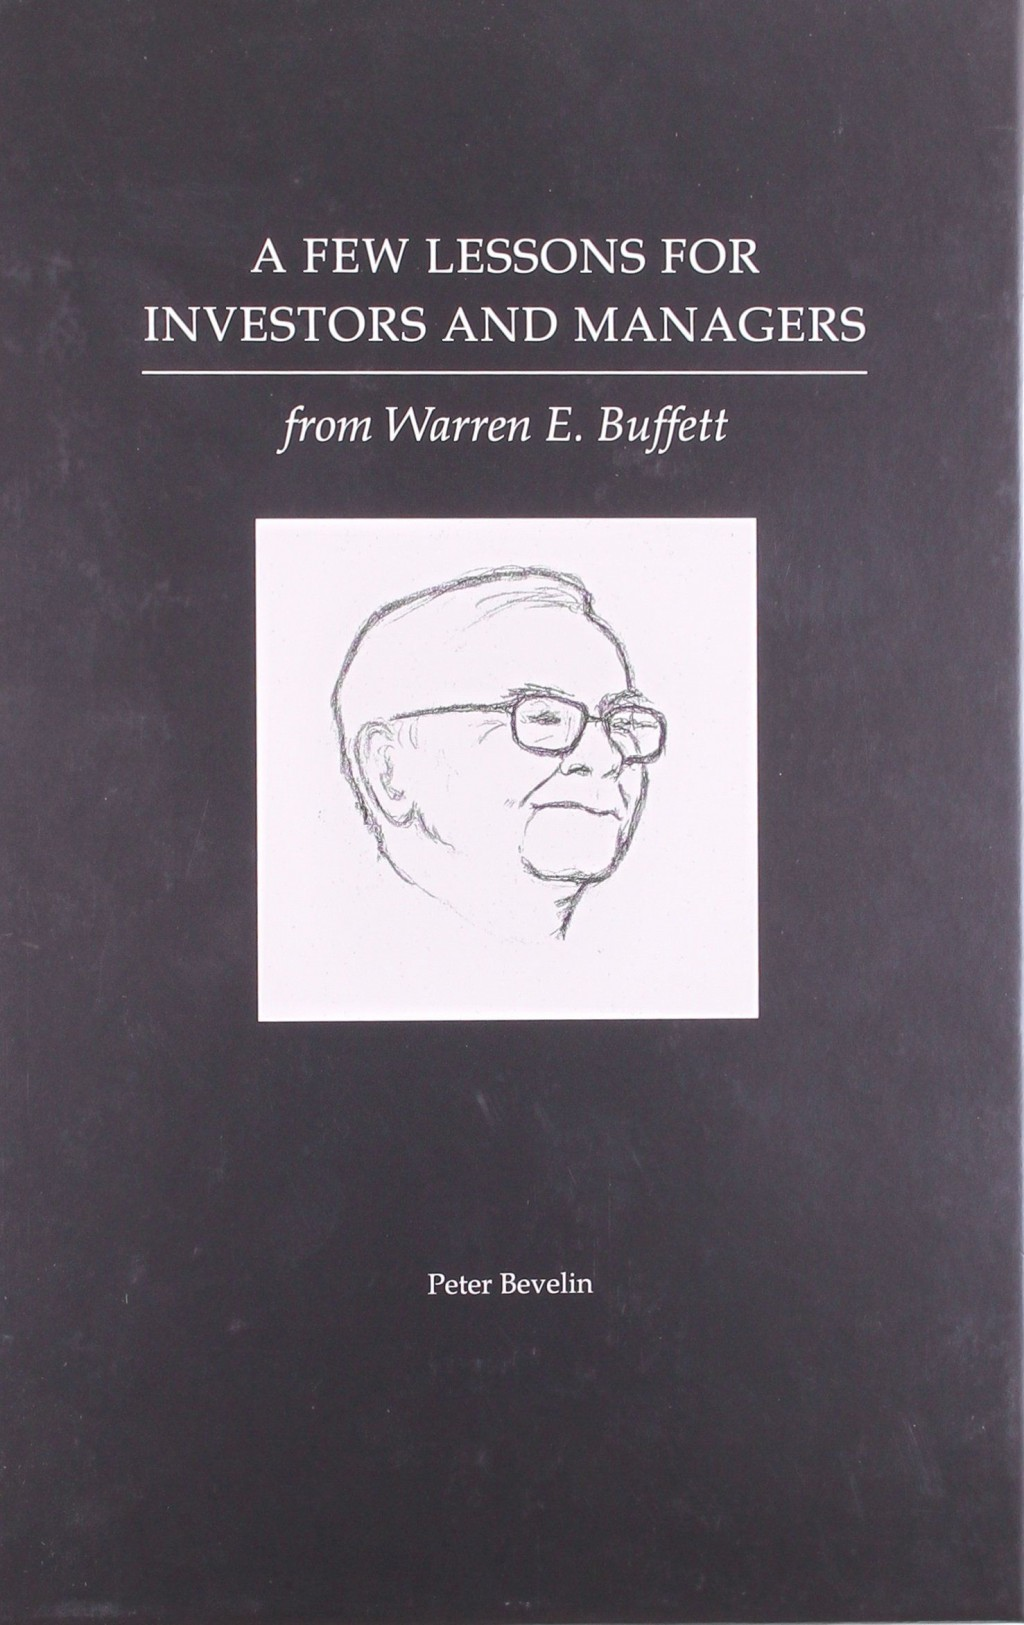 006 Essay Example The Essays Of Warren Buffett Lessons For Investors And Managers Striking 4th Edition Free Pdf Large